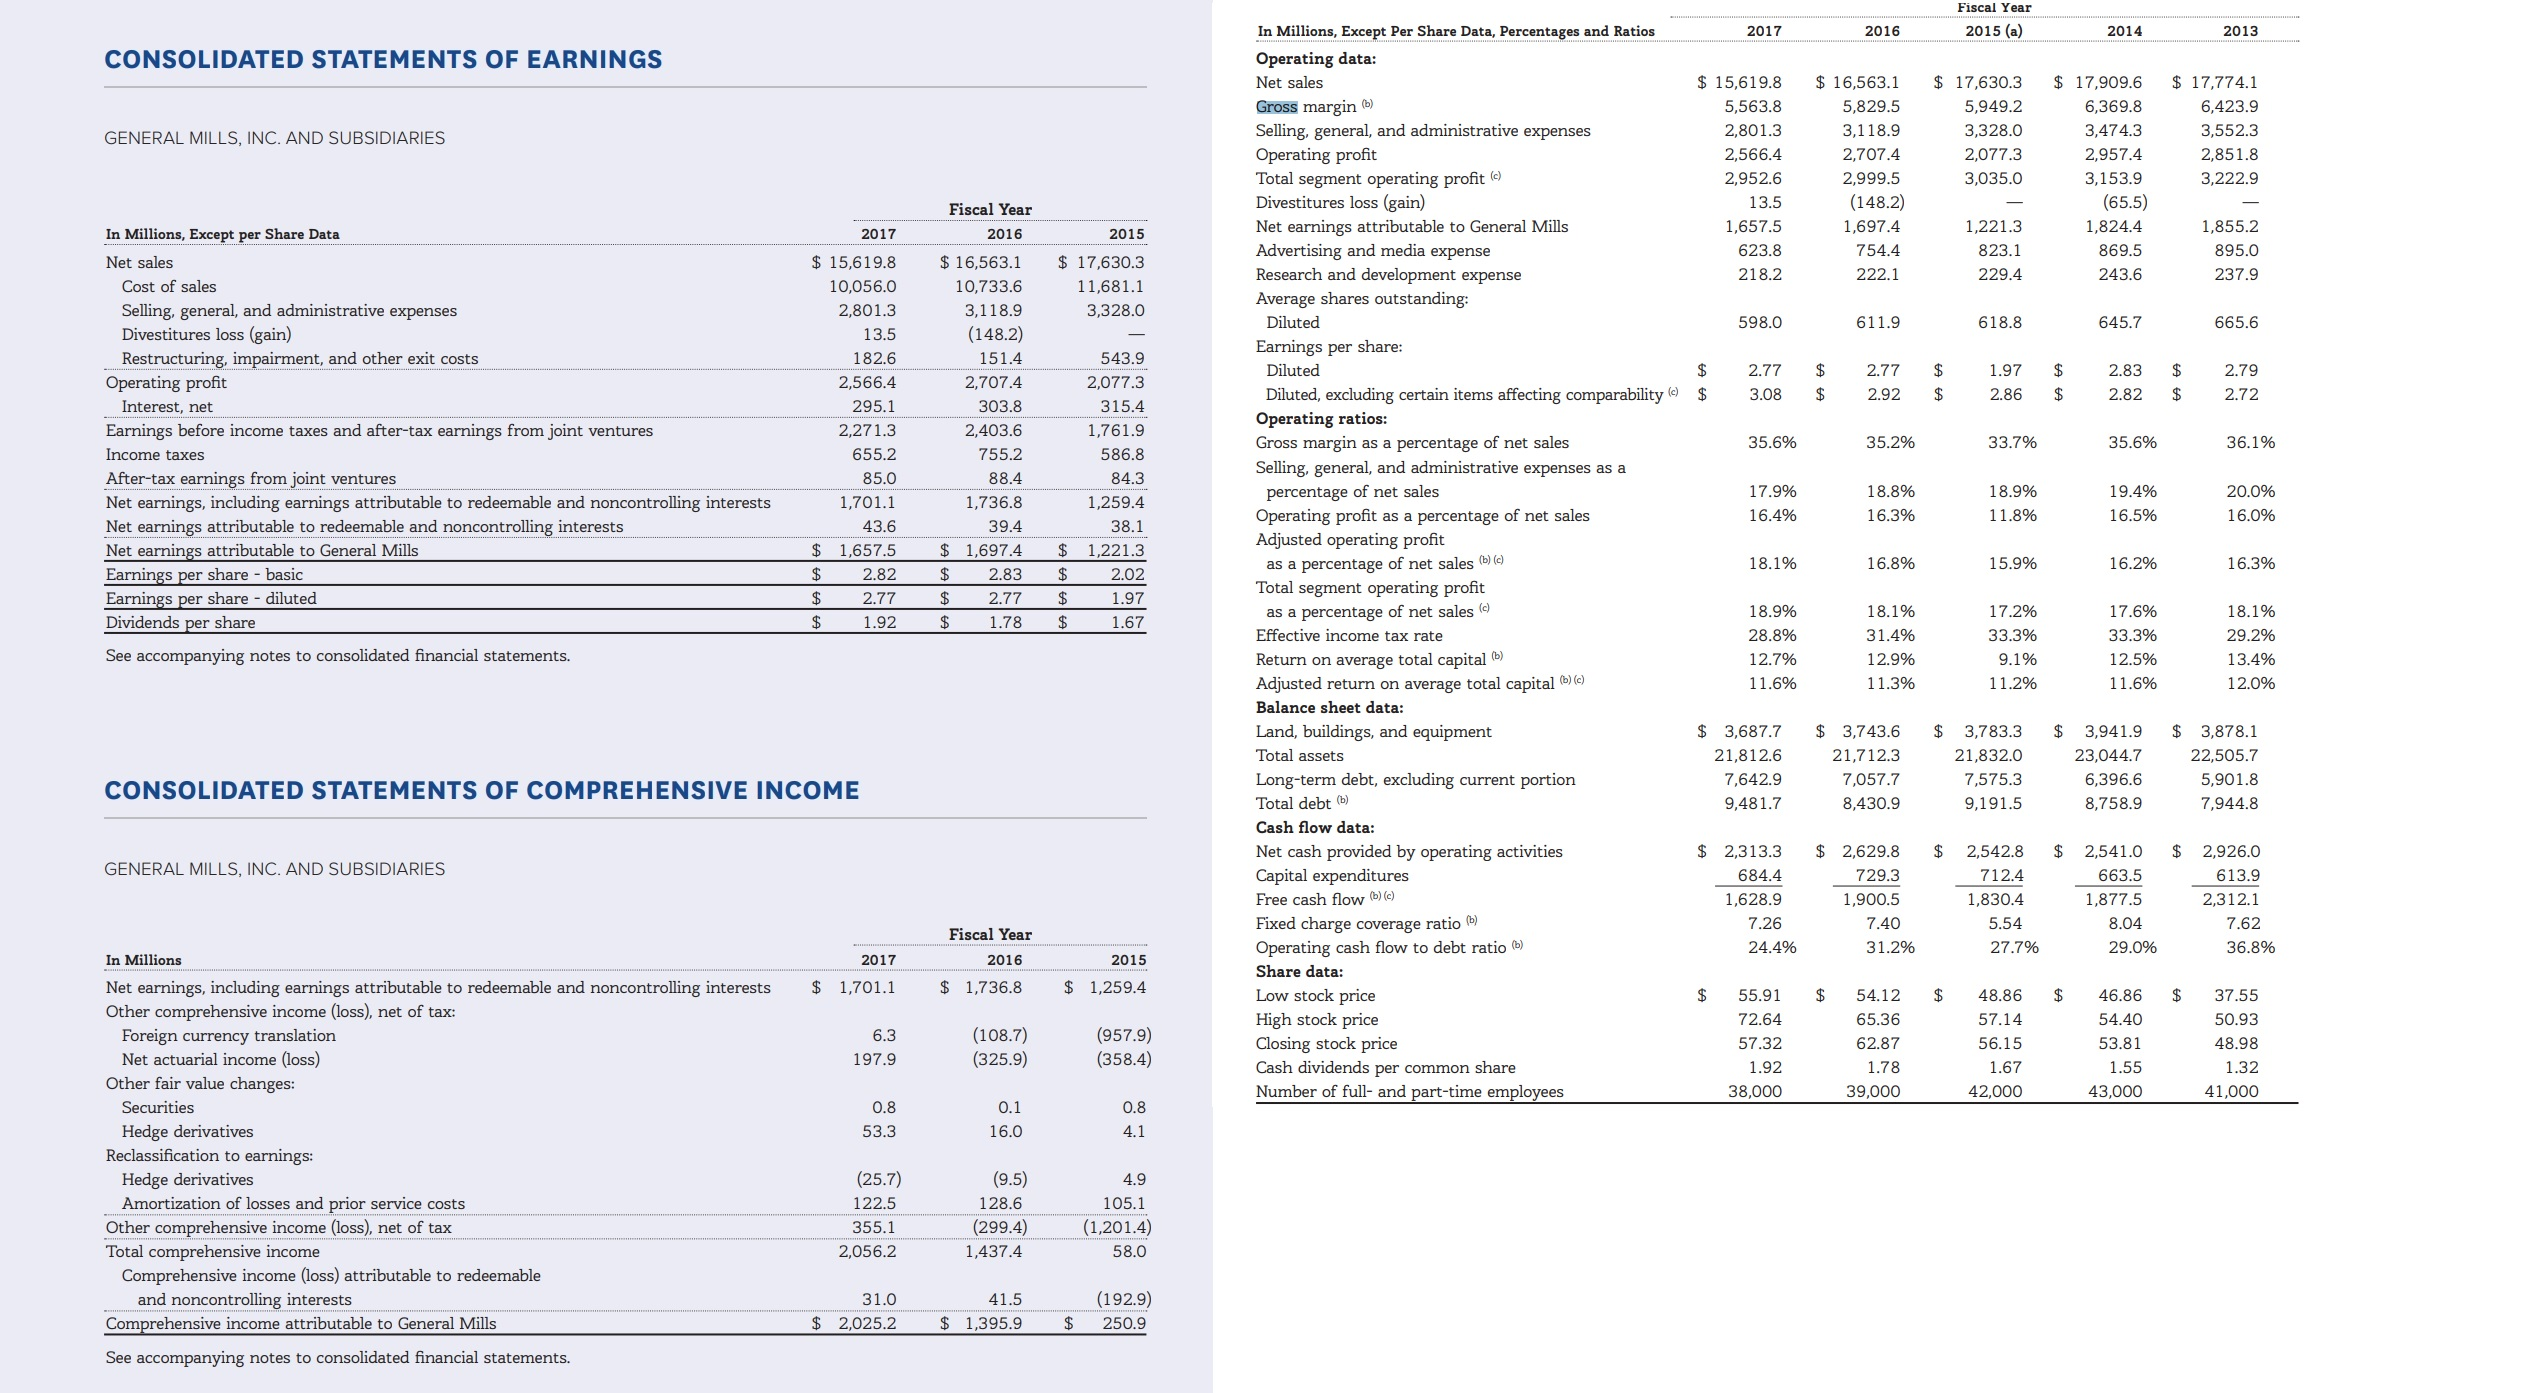 Fiscal Year 2015 (a) In Millions, Except Per Share Data, Percentages and Ratios 2017 2016 2014 2013 CONSOLIDATED STATEMENTS OF EARNINGS Operating data: $ 17,630.3 $ 17,774.1 $15,619.8 $ 16,563.1 17,909.6 Net sales Gross margin b) Selling, general, and administrative expenses Operating profit Total segment operating profit (e Divestitures loss (gain) Net earnings attributable to General Mills Advertising and media expense Research and development expense 5,563.8 5,829.5 5,949.2 6,369.8 6,423.9 3,328.0 2,801.3 3,118.9 3,474.3 3,552.3 GENERAL MILLS, INC. AND SUBSIDIARIES 2,566.4 2,707.4 2,077.3 2,957.4 2,851.8 2,952.6 2,999.5 3,035.0 3,153.9 3,222.9 (148.2) (65.5) 13.5 Fiscal Year 1,657.5 1,697.4 1,221.3 1,824.4 1,855.2 In Millions, Except per Share Data 2017 2016 2015 754.4 623.8 823.1 869.5 895.0 $ 17,630.3 Net sales $ 15,619.8 $ 16,563.1 243.6 218.2 222.1 229.4 237.9 Cost of sales 10,056.0 10,733.6 11,681.1 Average shares outstanding: Selling, general, and administrative expenses Divestitures loss (gain) Restructuring, impairment, and other exit costs Operating profit 3,118.9 3,328.0 2,801.3 Diluted 598.0 611.9 618.8 645.7 665.6 (148.2) 13.5 Earnings per share: 182.6 151.4 543.9 $ $ Diluted 2.77 2.77 1.97 2.83 2.79 2,566.4 2,707.4 2,077.3 Diluted, excluding certain items affecting comparability $ Operating ratios: Gross margin as a percentage of net sales $ 3.08 2.92 $ 2.86 $ 2.82 2.72 $ Interest, net 295.1 303.8 315.4 Earnings before income taxes and after-tax earnings from joint ventures 2,271.3 2,403.6 1,761.9 35.6% 33.7% 35.2% 35.6% 36.1% 655.2 586.8 Income taxes 755.2 Selling, general, and administrative expenses as a After-tax earnings from joint ventures Net earnings, including earnings attributable to redeemable and noncontrolling interests Net earnings attributable to redeemable and noncontrolling interests 85.0 88.4 84.3 percentage of net sales Operating profit as a percentage of net sales Adjusted operating profit 19.4% 17.9% 18.8% 18.9% 20.0% 1,701.1 1,7